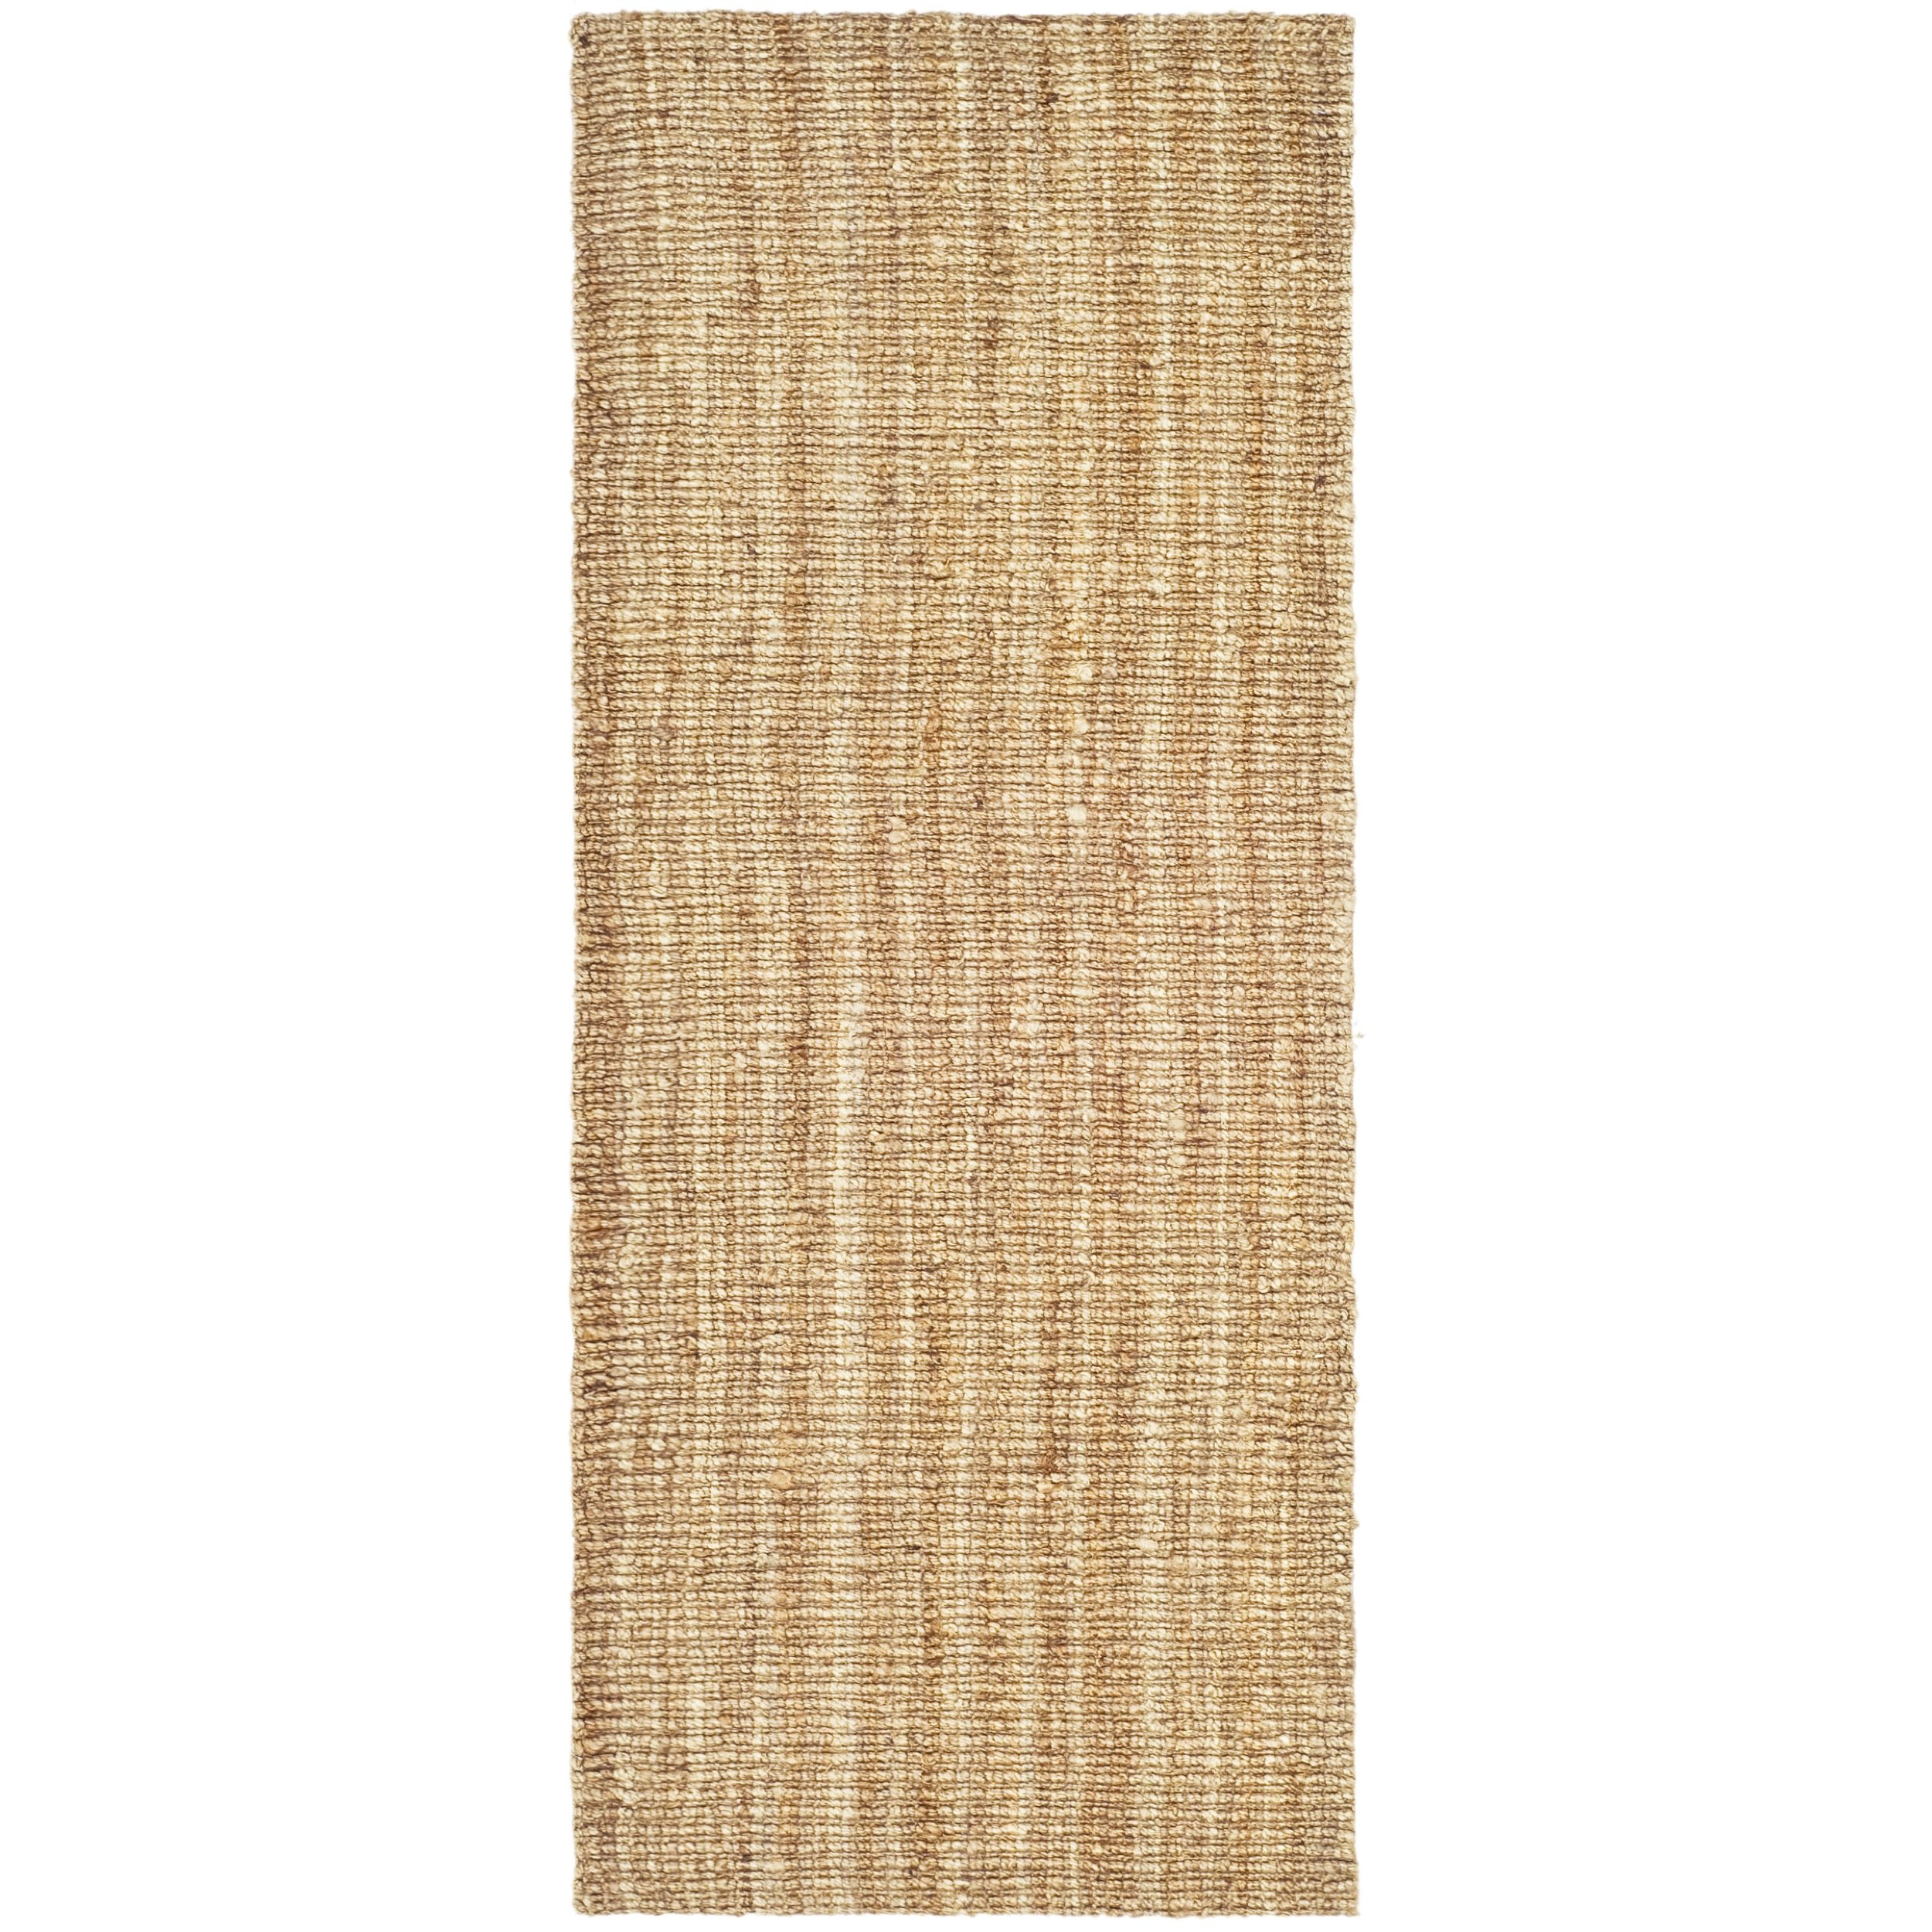 Safavieh Natural Fiber Collection NF447A Hand Woven Natural Jute Runner (2' x 6') by Safavieh (Image #2)